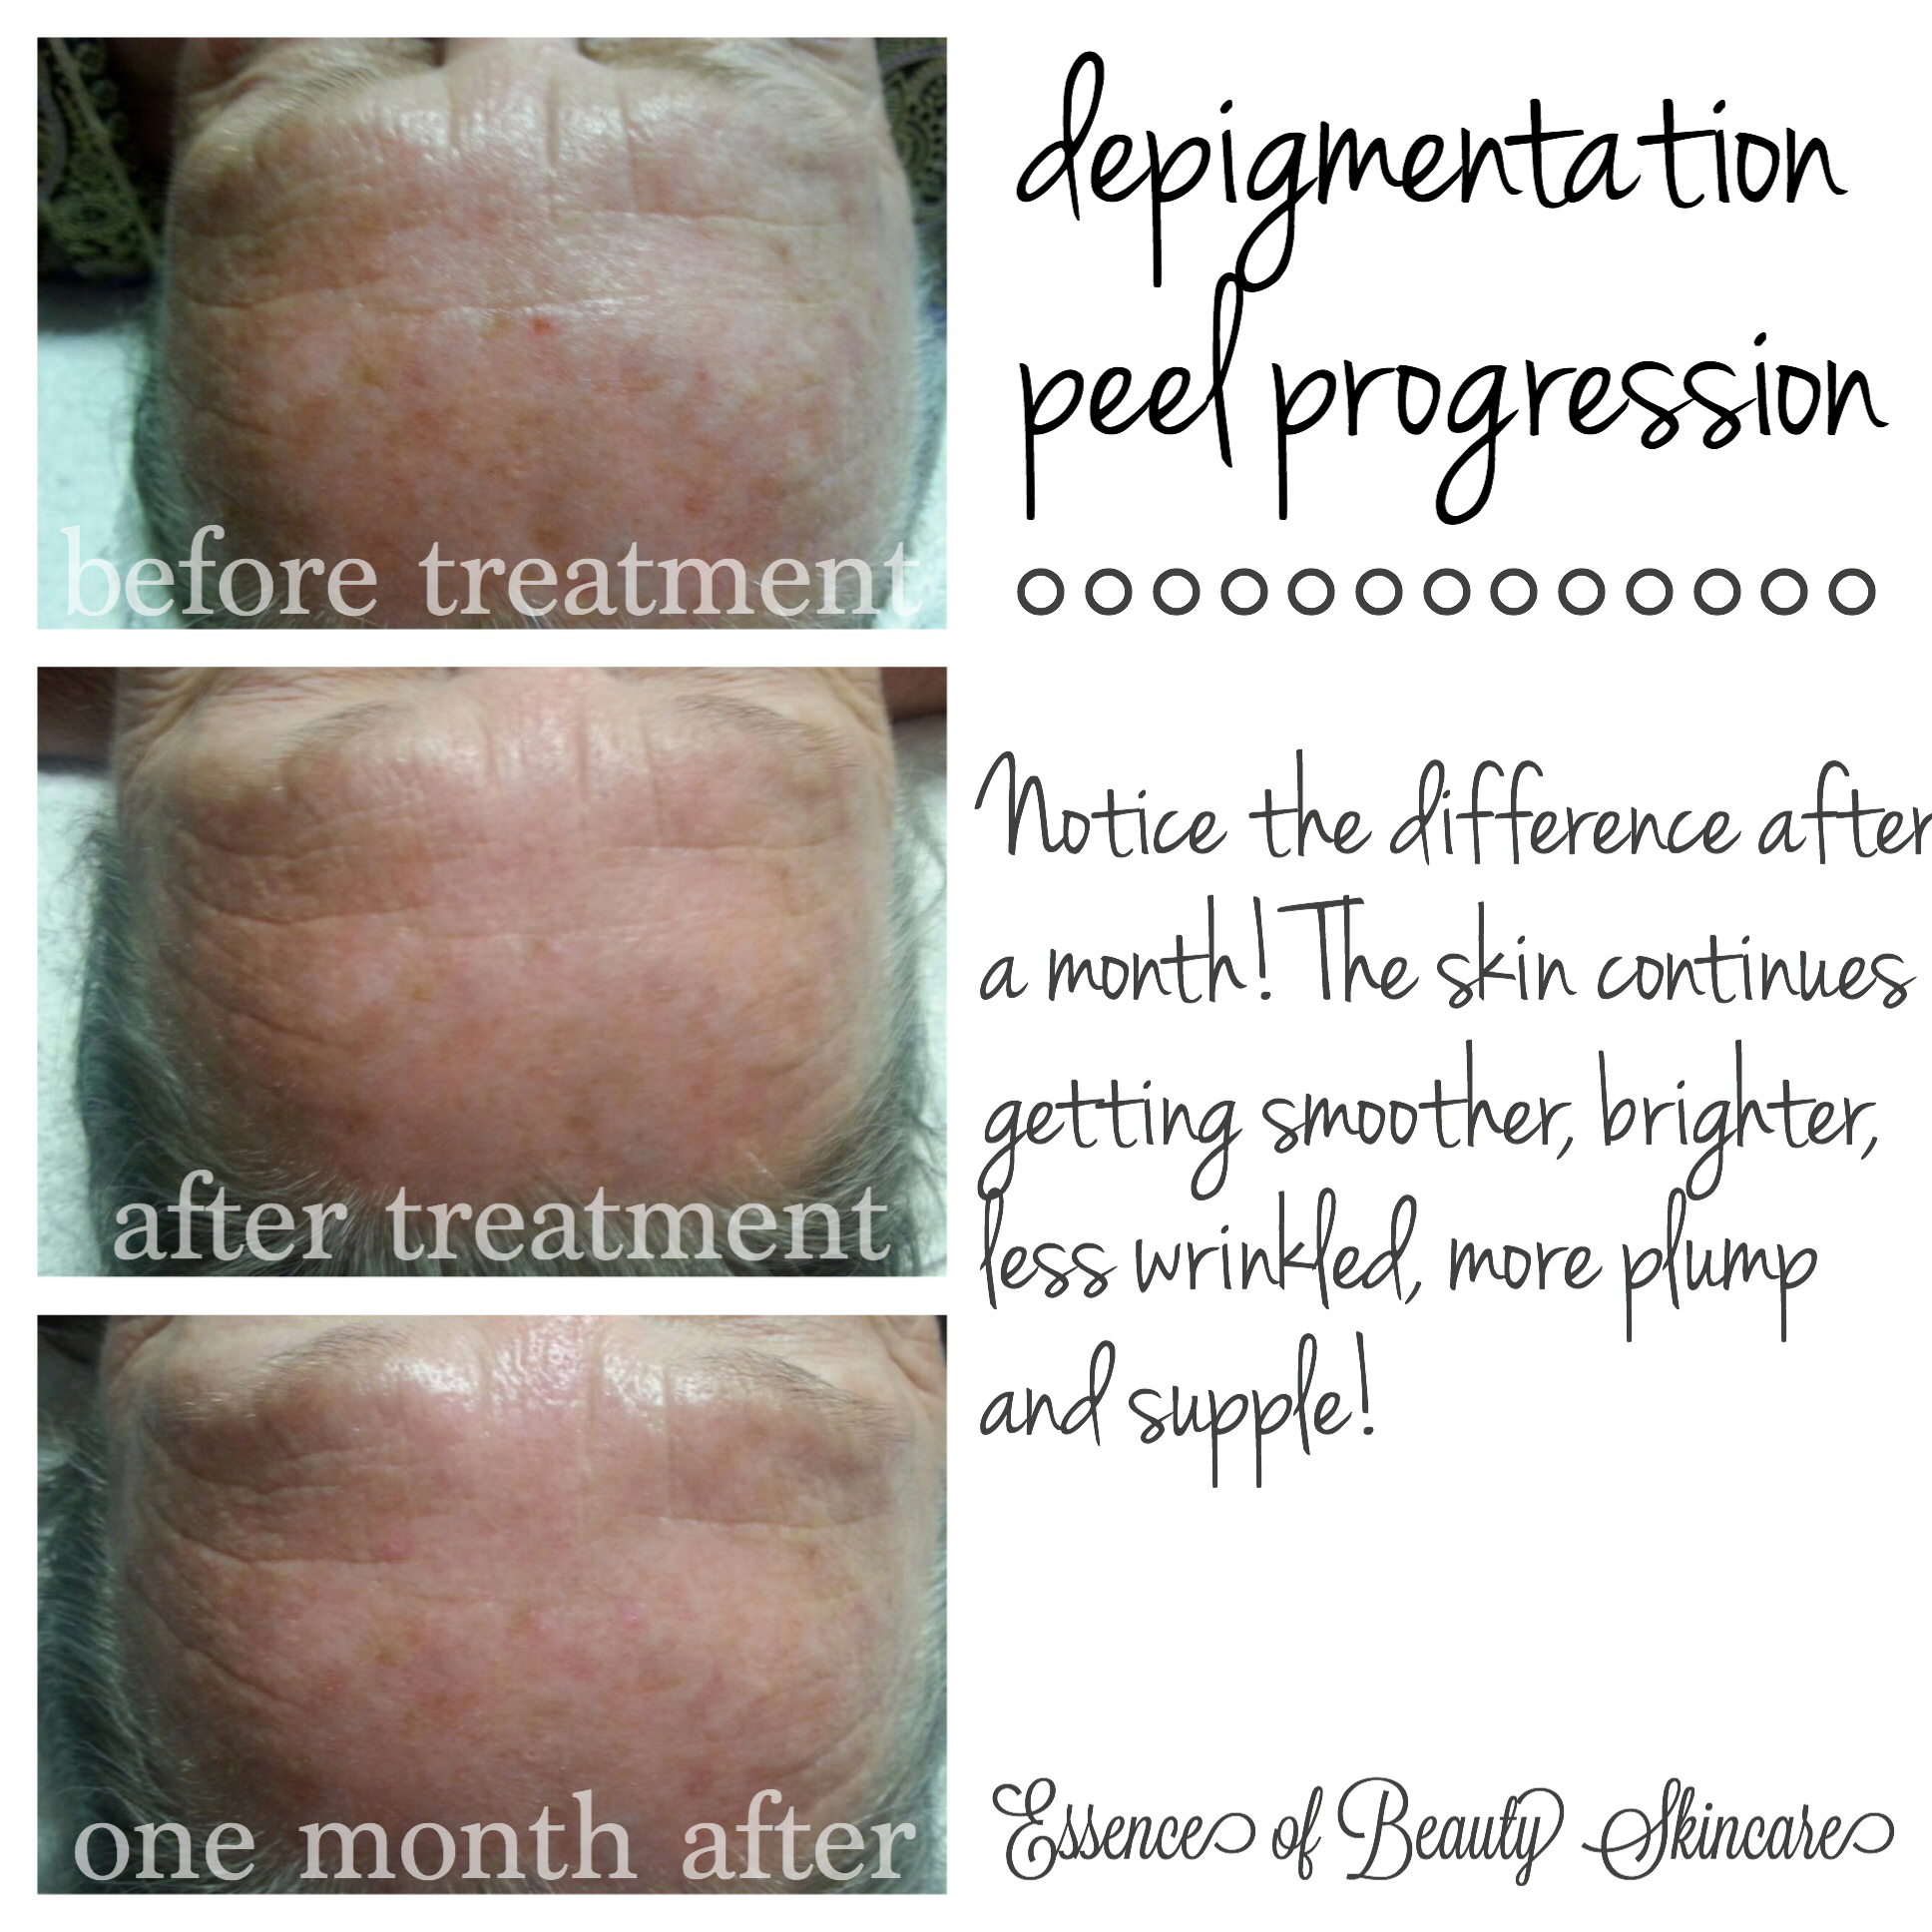 Depigmentation Peel